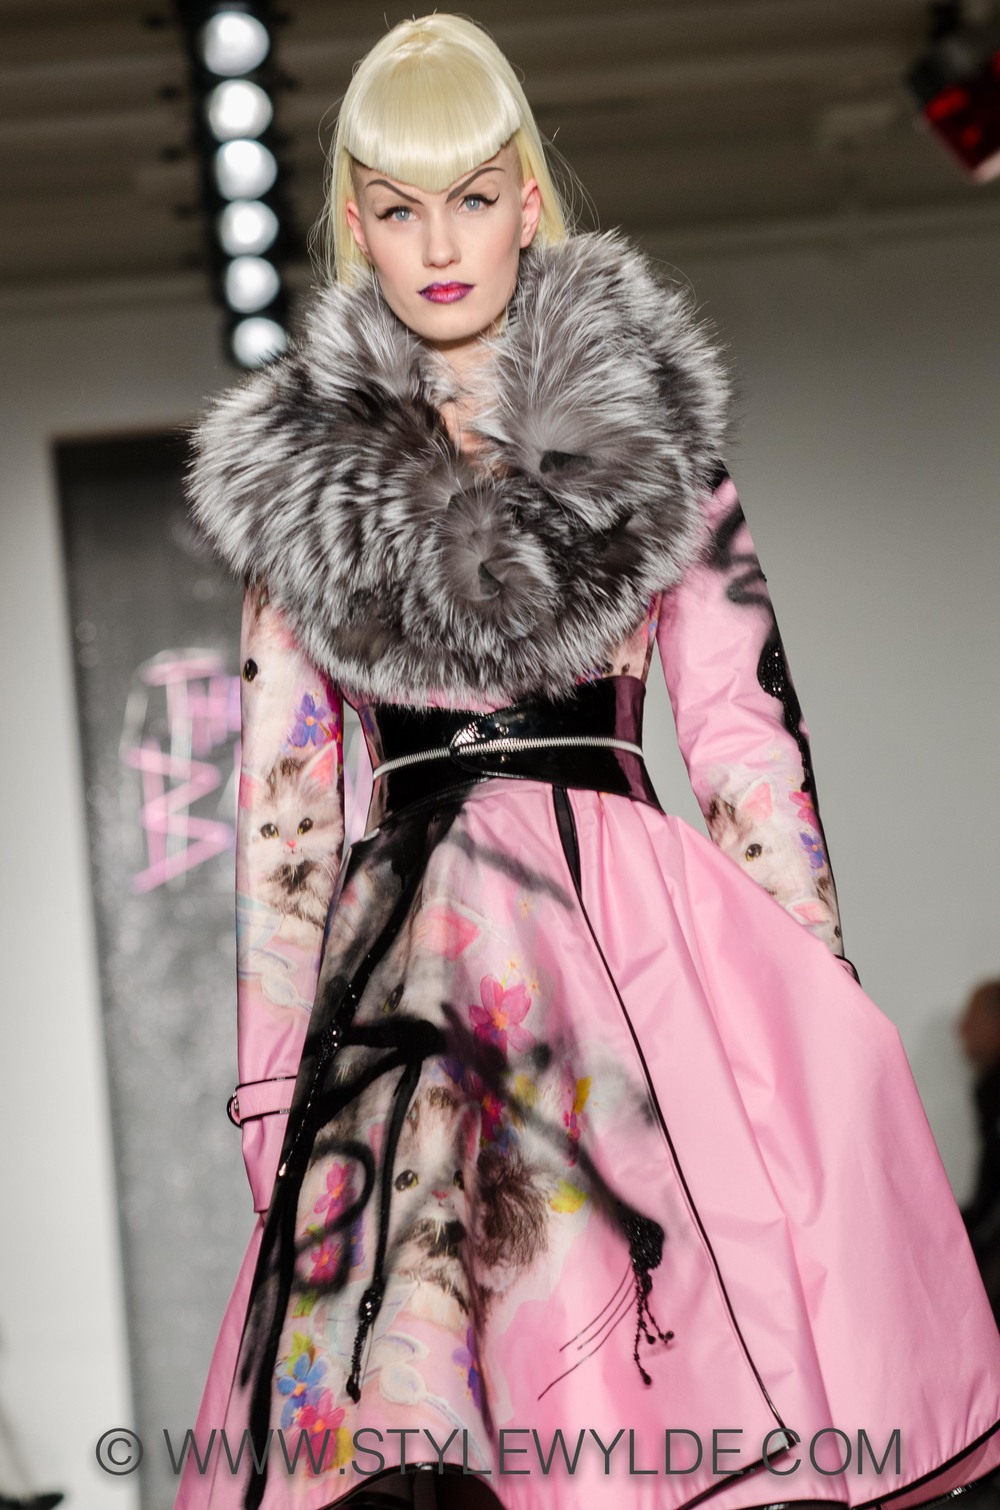 Stylewylde_Blonds_FW2014_FOH_CA (4 of 16).jpg